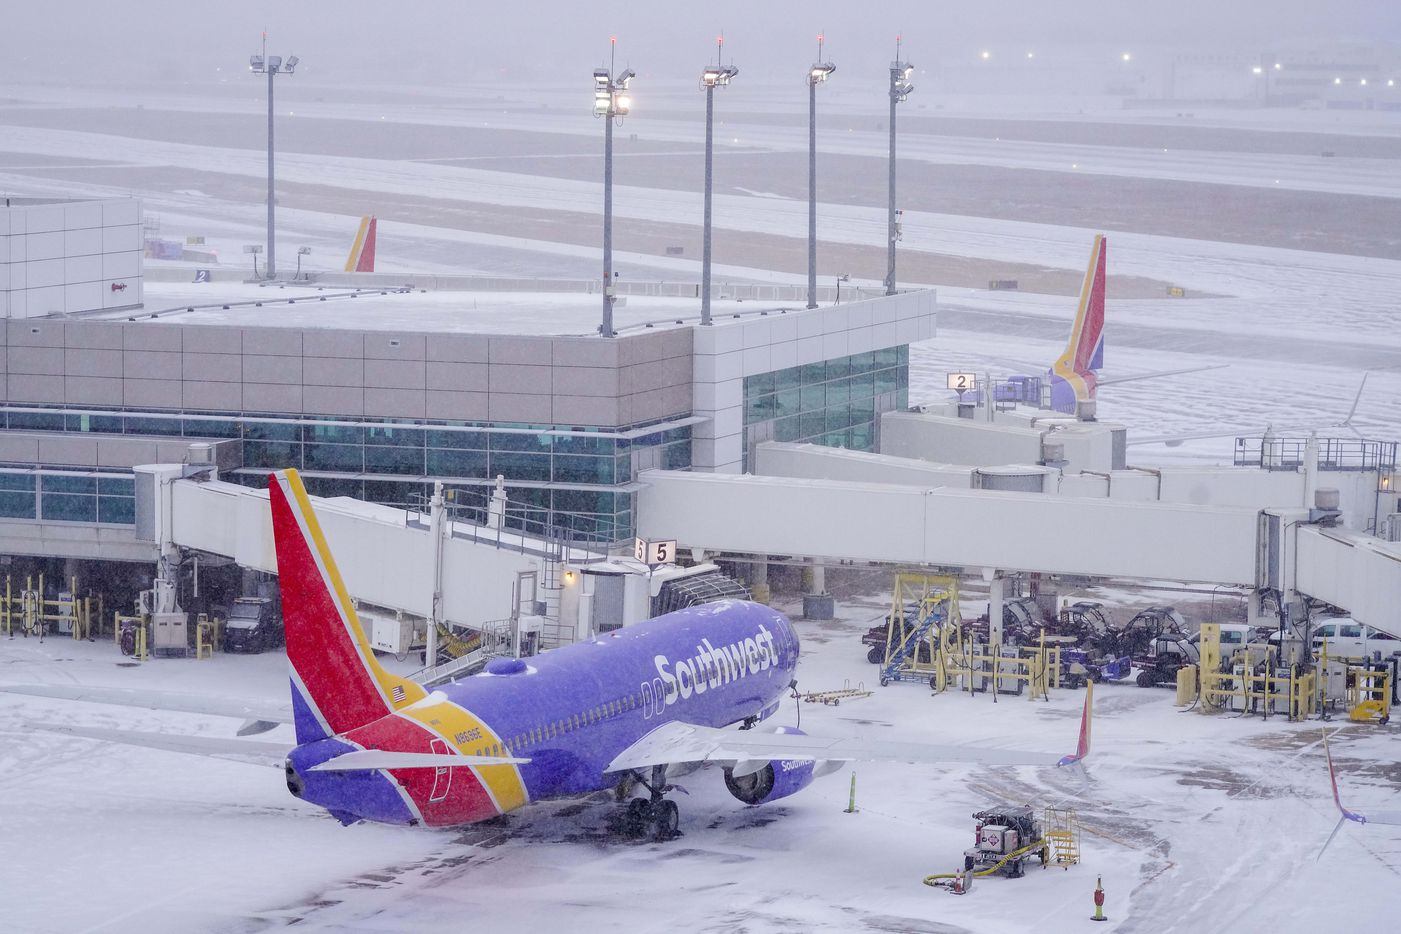 Idle Southwest Airlines planes sits at gates at Dallas Love Field as a winter storm brings snow and freezing temperatures to North Texas on Sunday, Feb. 14, 2021, in Dallas.  By evening all commercial flights were cancelled and all ticket counters were closed at the airport.